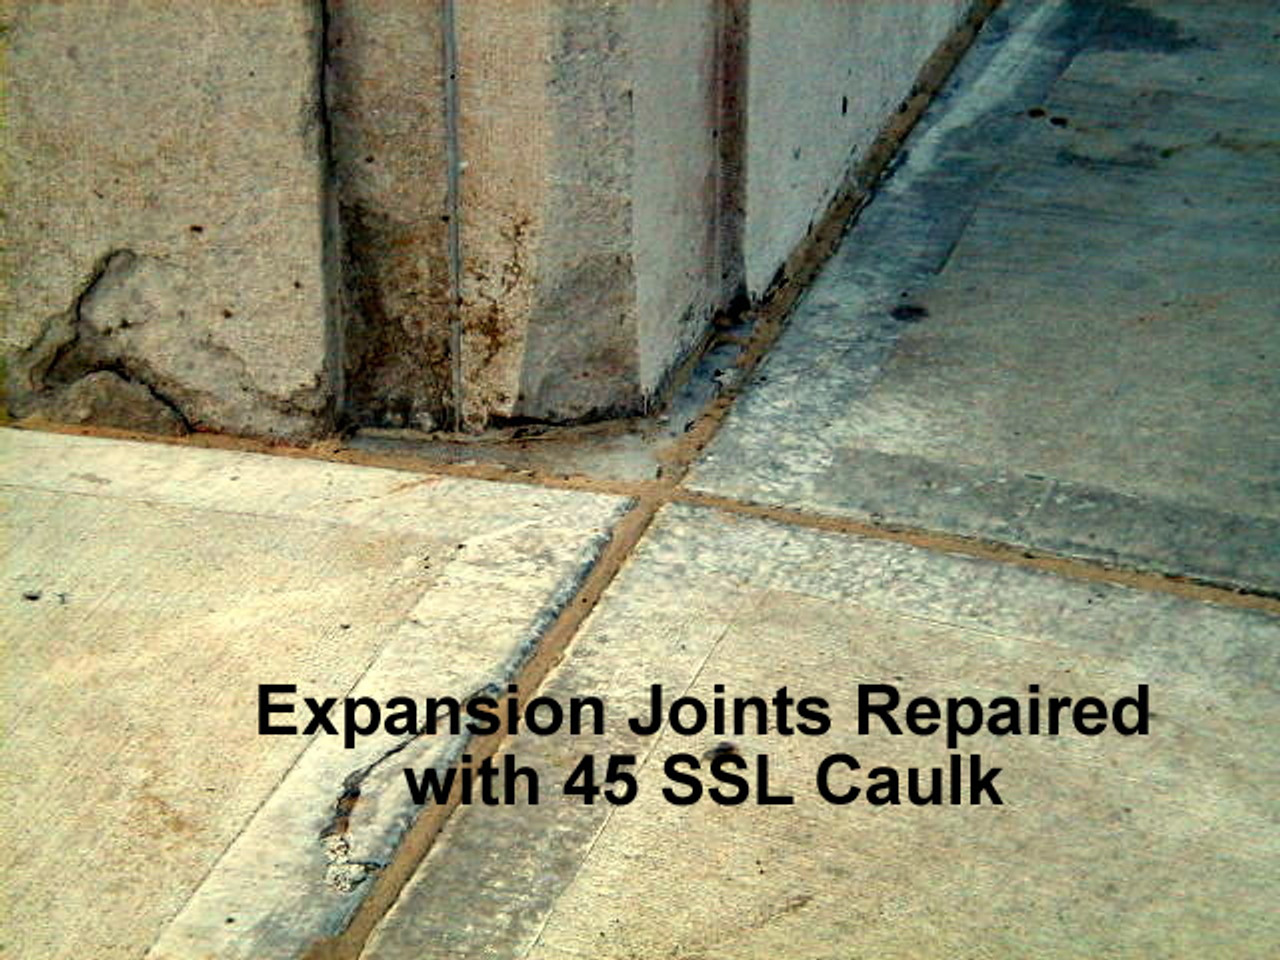 Sealed sidewalk Expansion joints with 45 SSL Caulk and finish sand